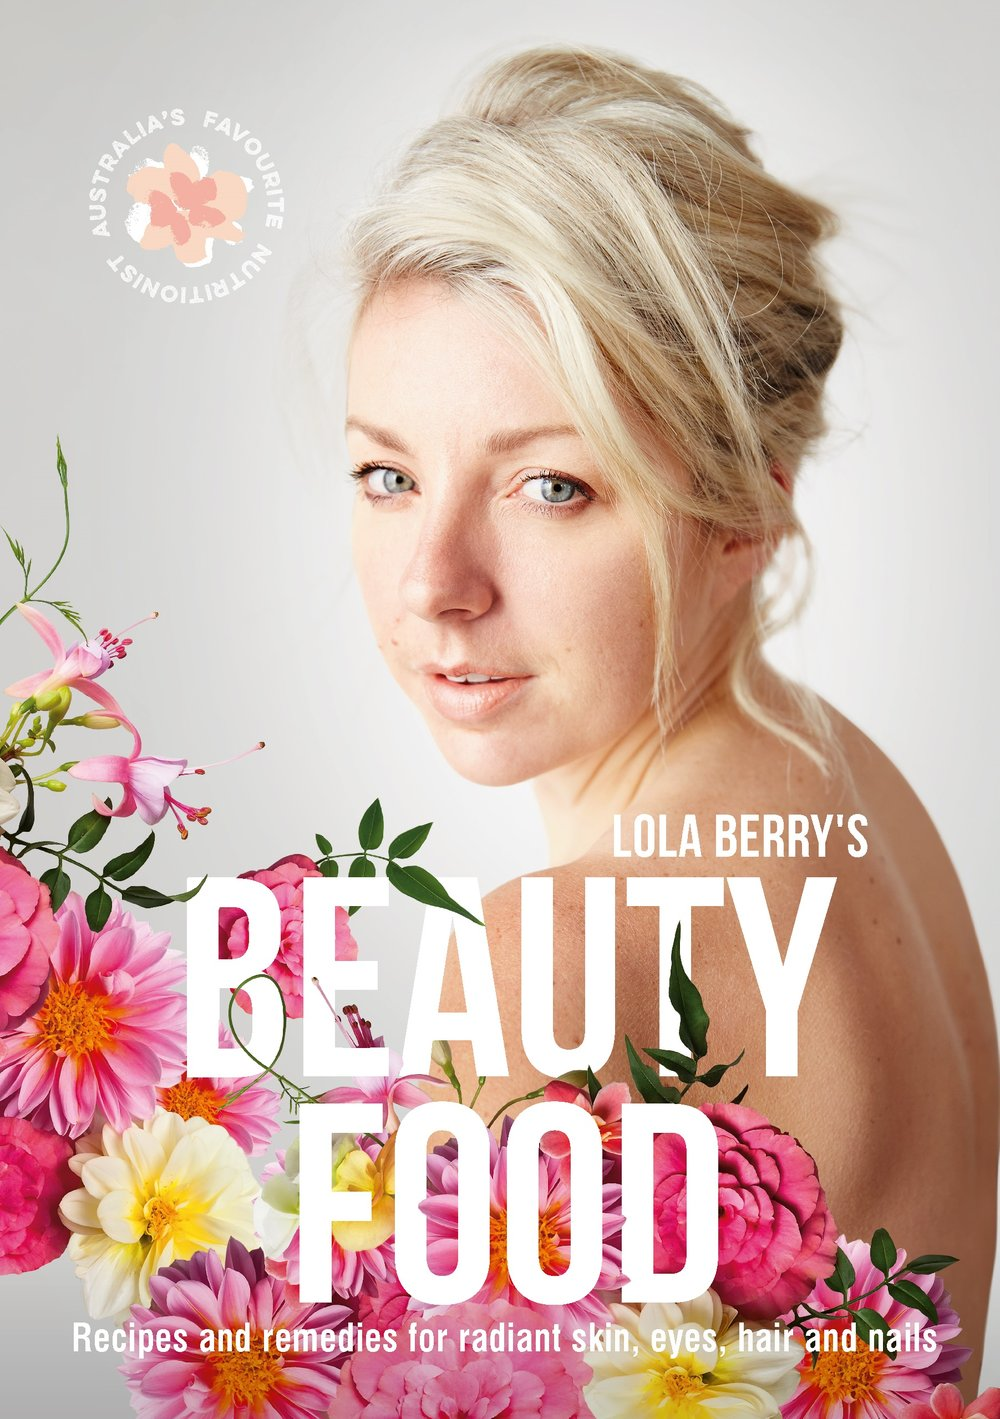 Beauty-Food-Cover Lola Berry.jpg